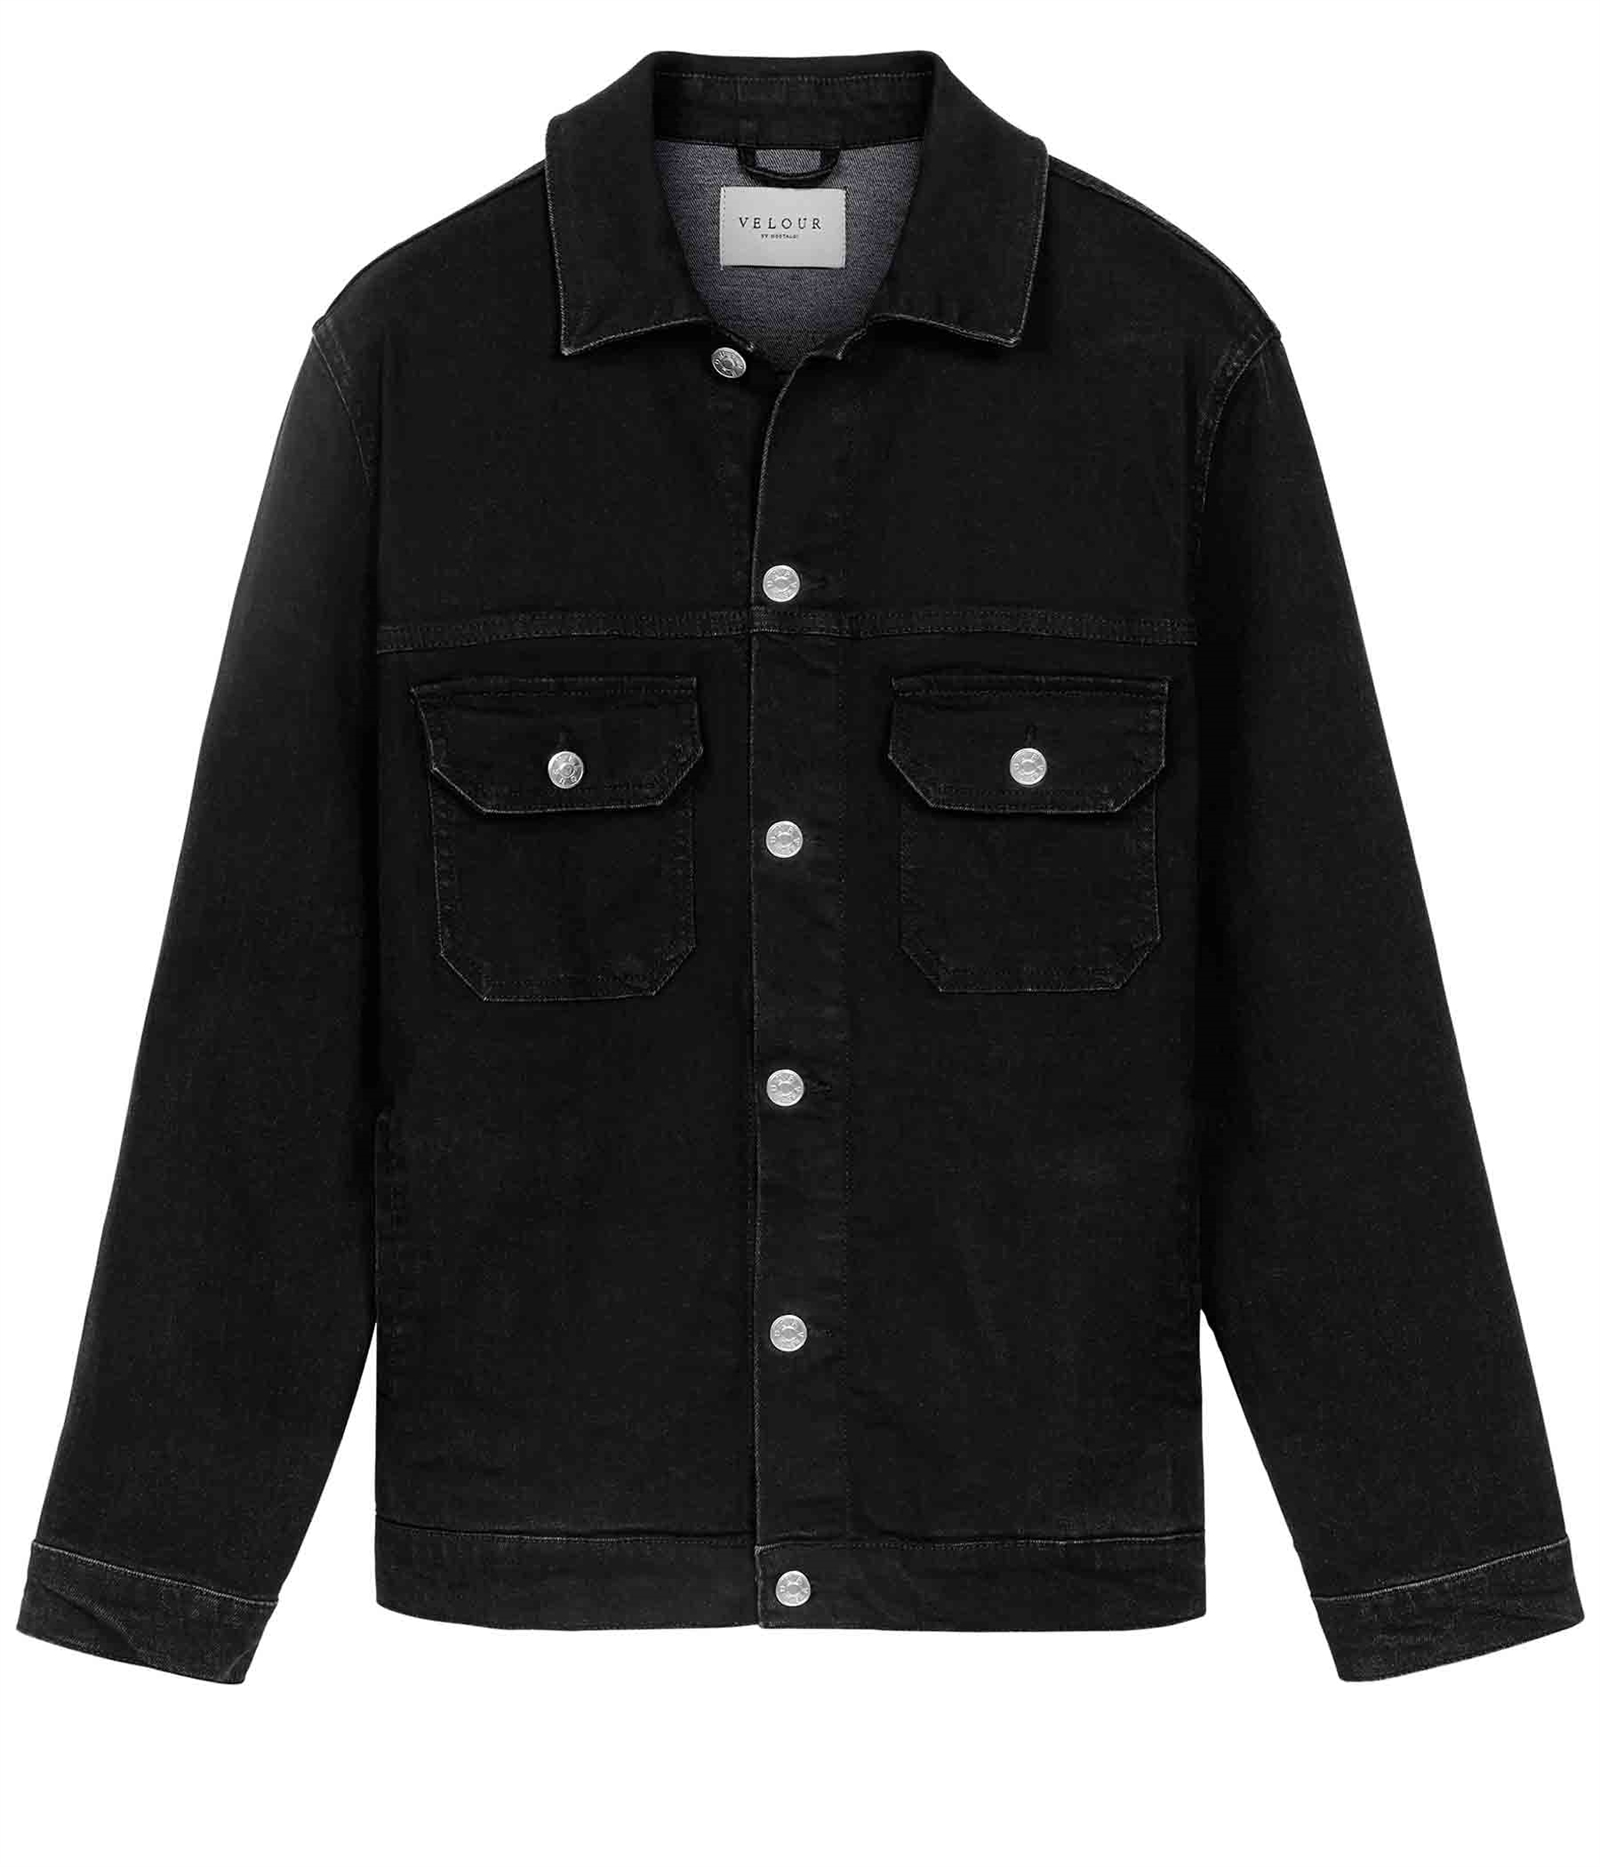 VBN_90ties_Jeans_Jacket_Swan_Black_3807700300_1800x2100